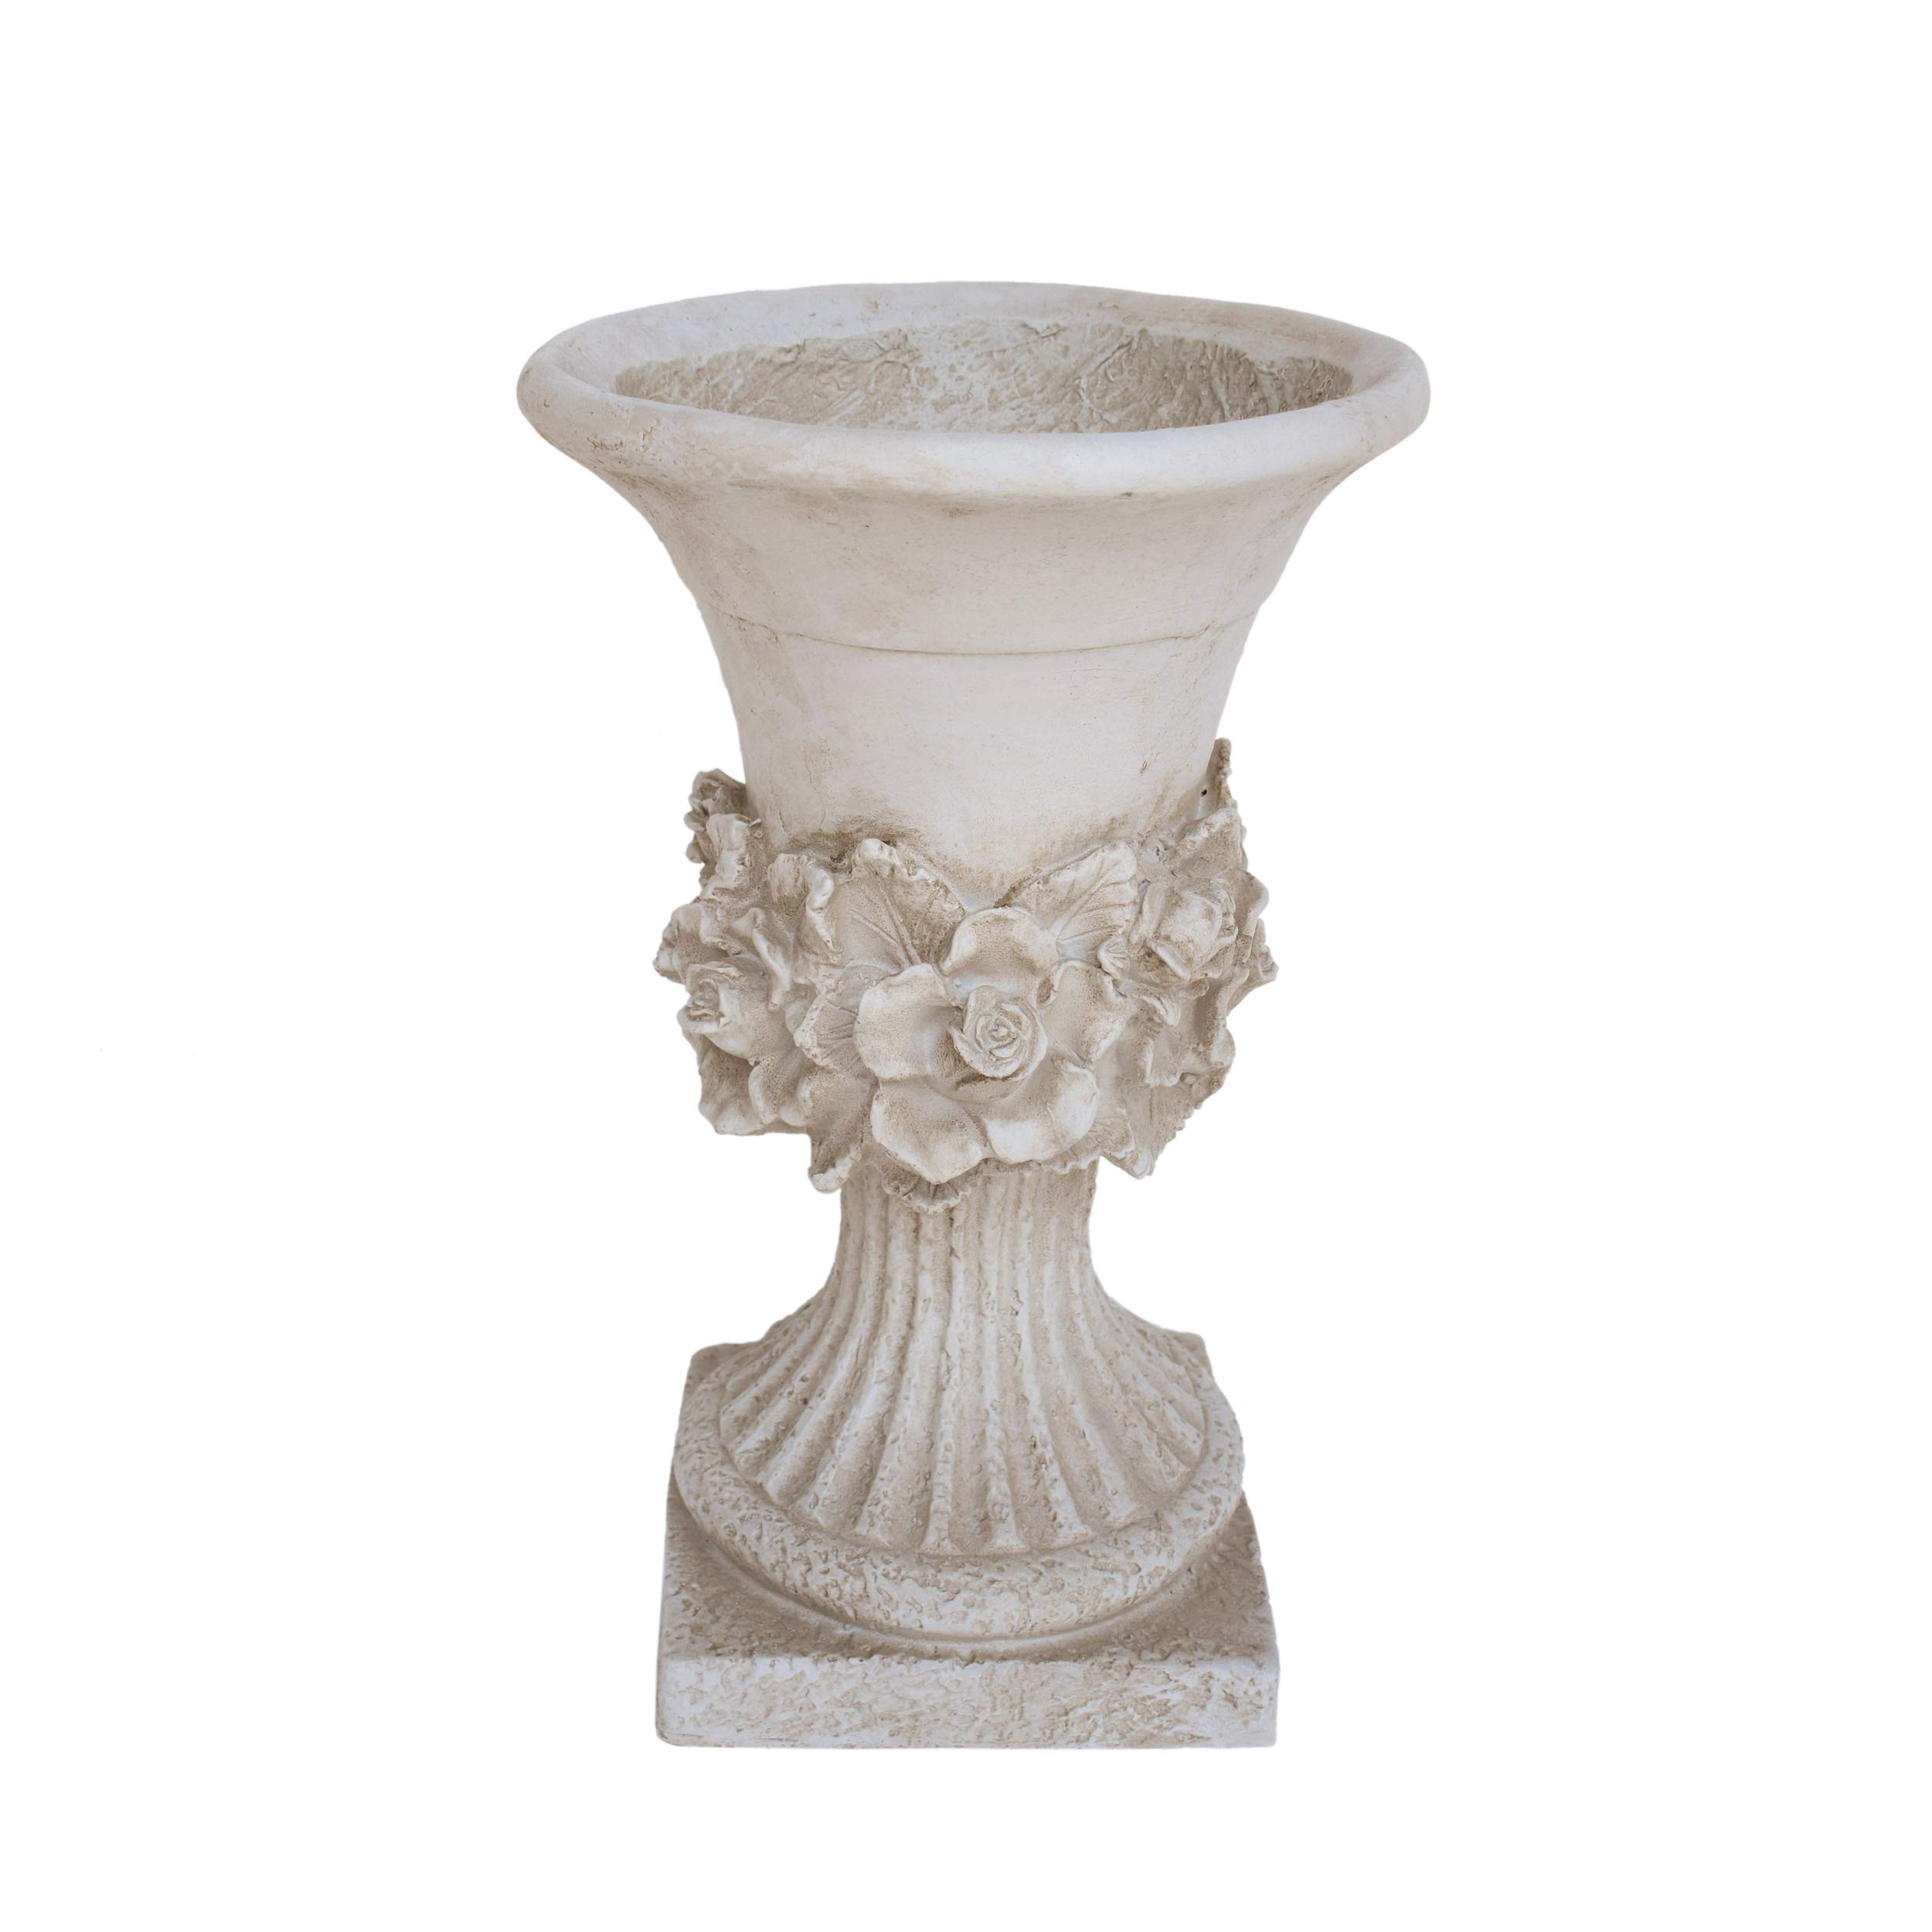 Great Deal Furniture Michaelia Chalice Garden Urn Planter, Roman, Botanical, Antique White Lightweight Concrete